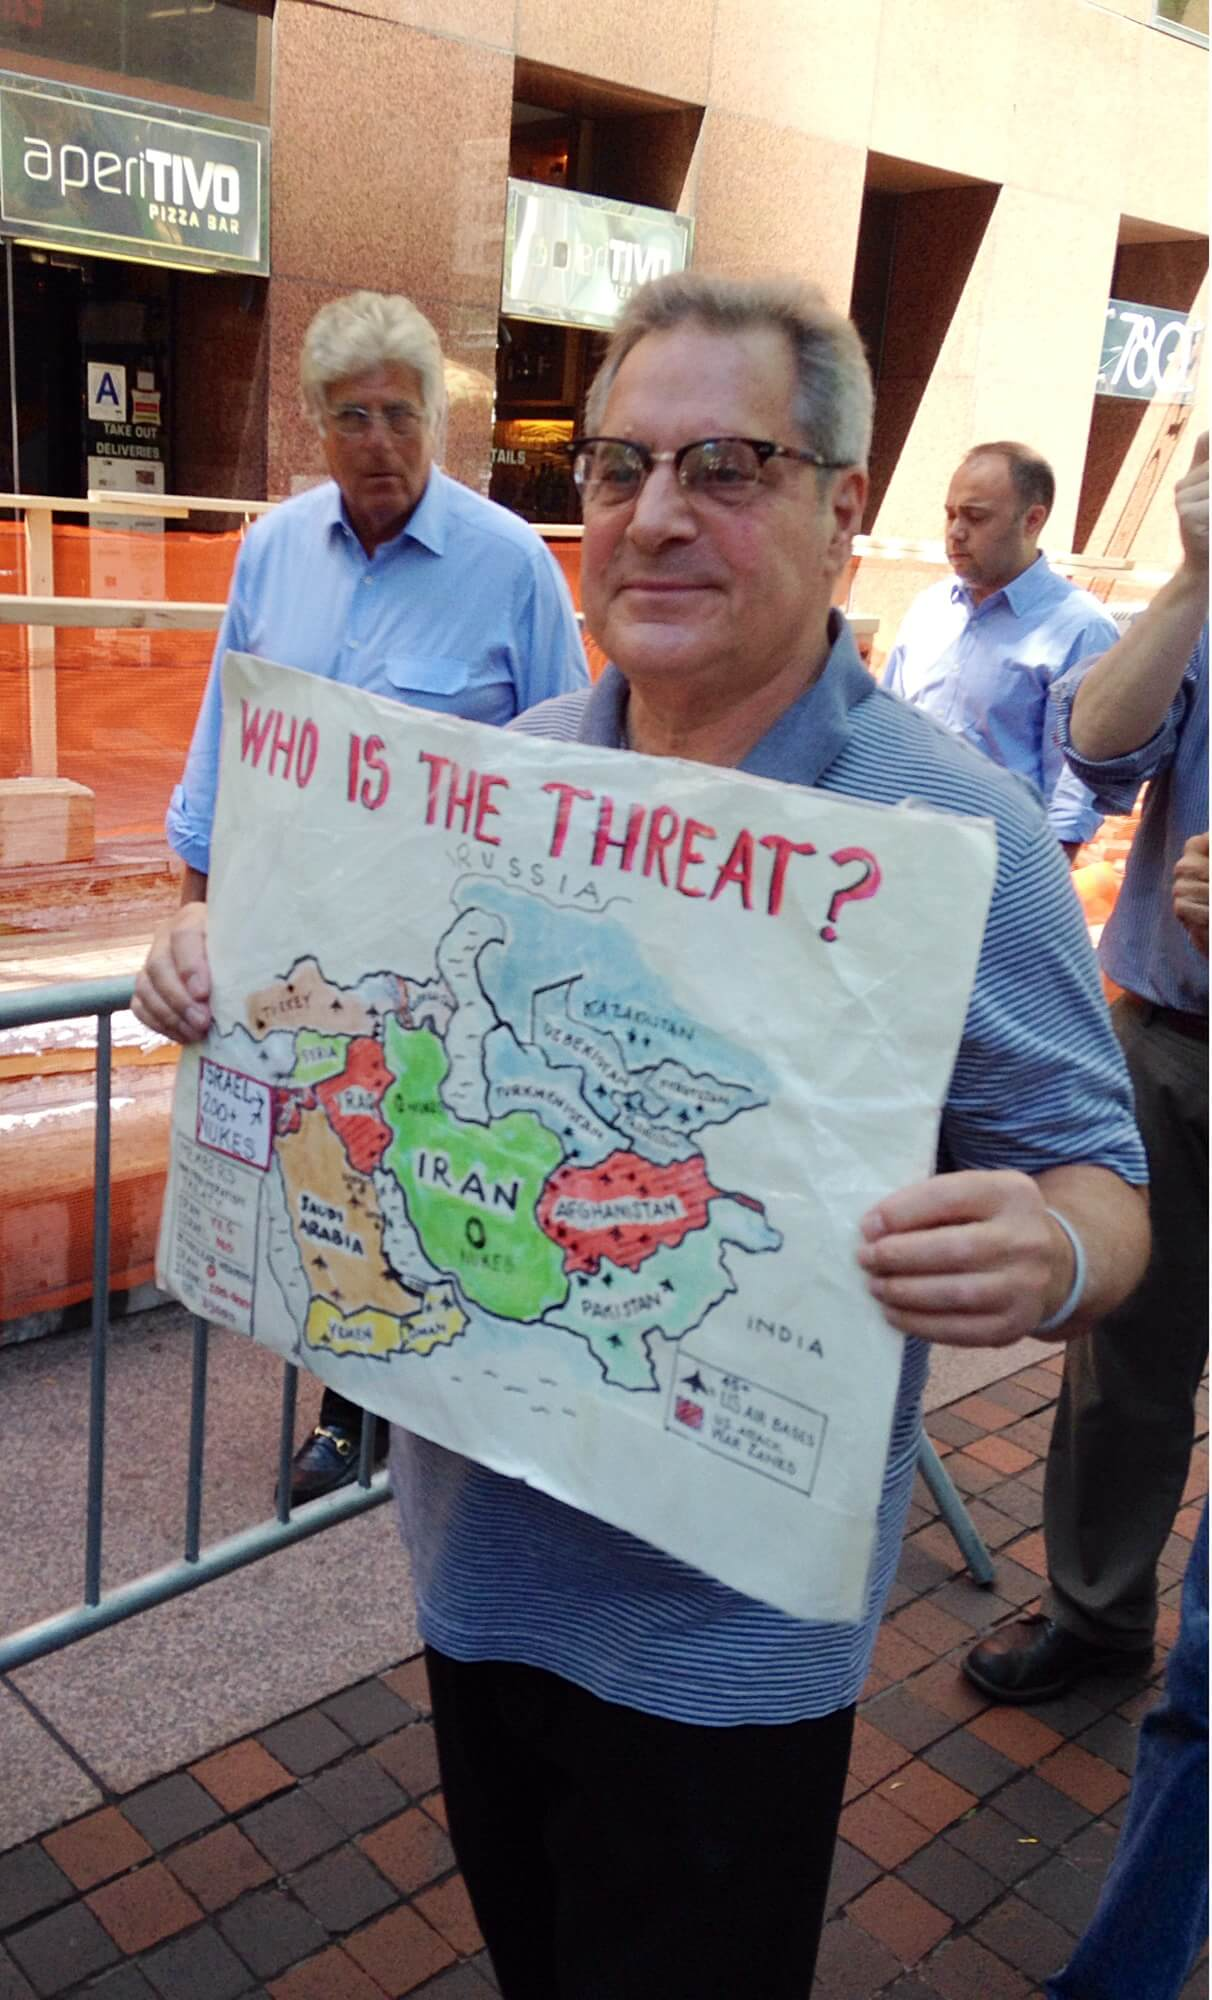 A pro-deal protestor displays a map detailing Israel's nuclear arsenal and U.S. military bases in the region, as well as the Nonproliferation Treaty membership statuses. (Photo: Eamon Murphy)